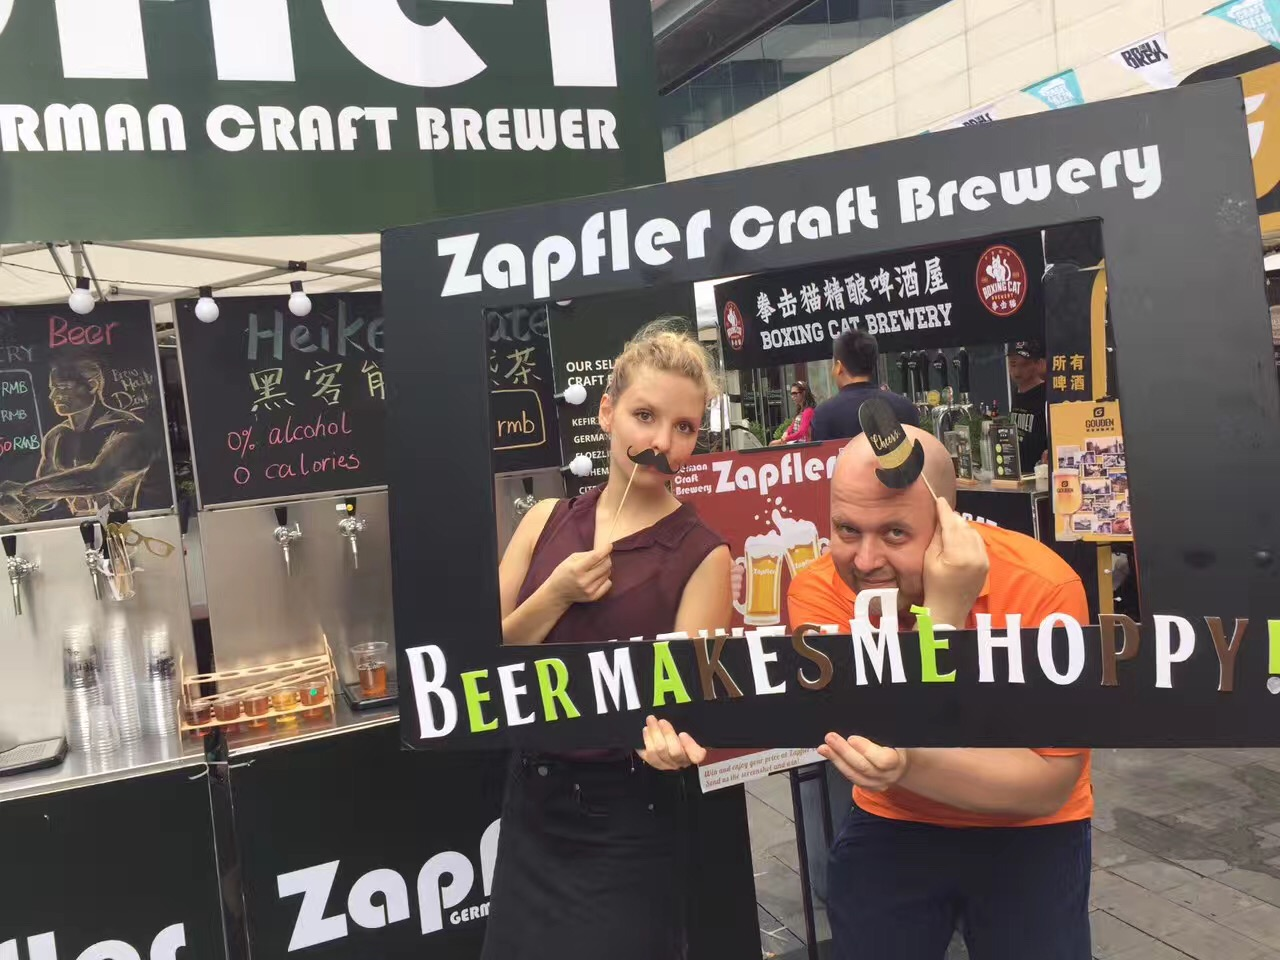 http://zapfler-craft-beer.com/wp-content/uploads/2018/08/zapfler-photo-frame.jpg